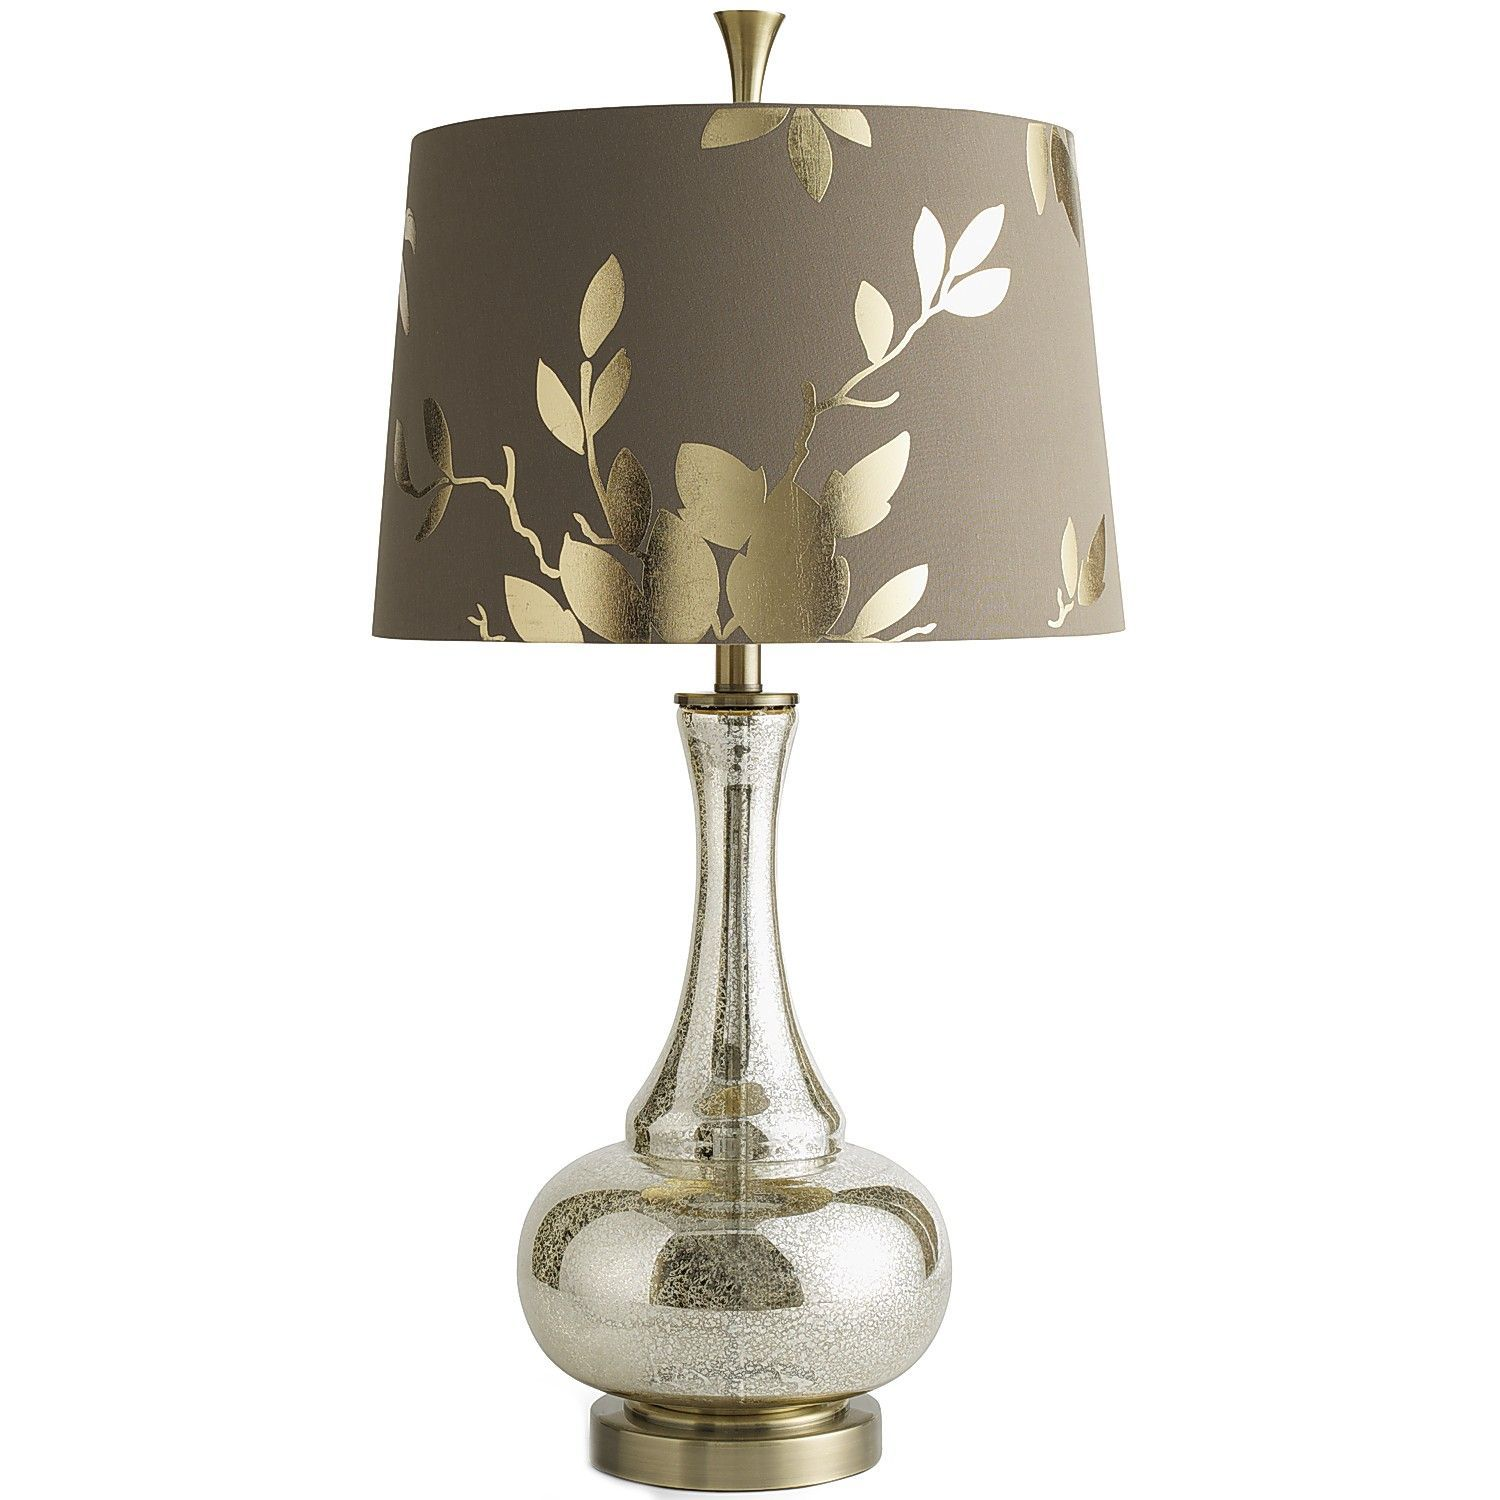 24 In Brushed Steel Gold Mercury Glass Table Lamp With Linen Shade And Led Bulb Included 19560 005 The Home Depot Gold Table Lamp Mercury Glass Table Lamp Table Lamp